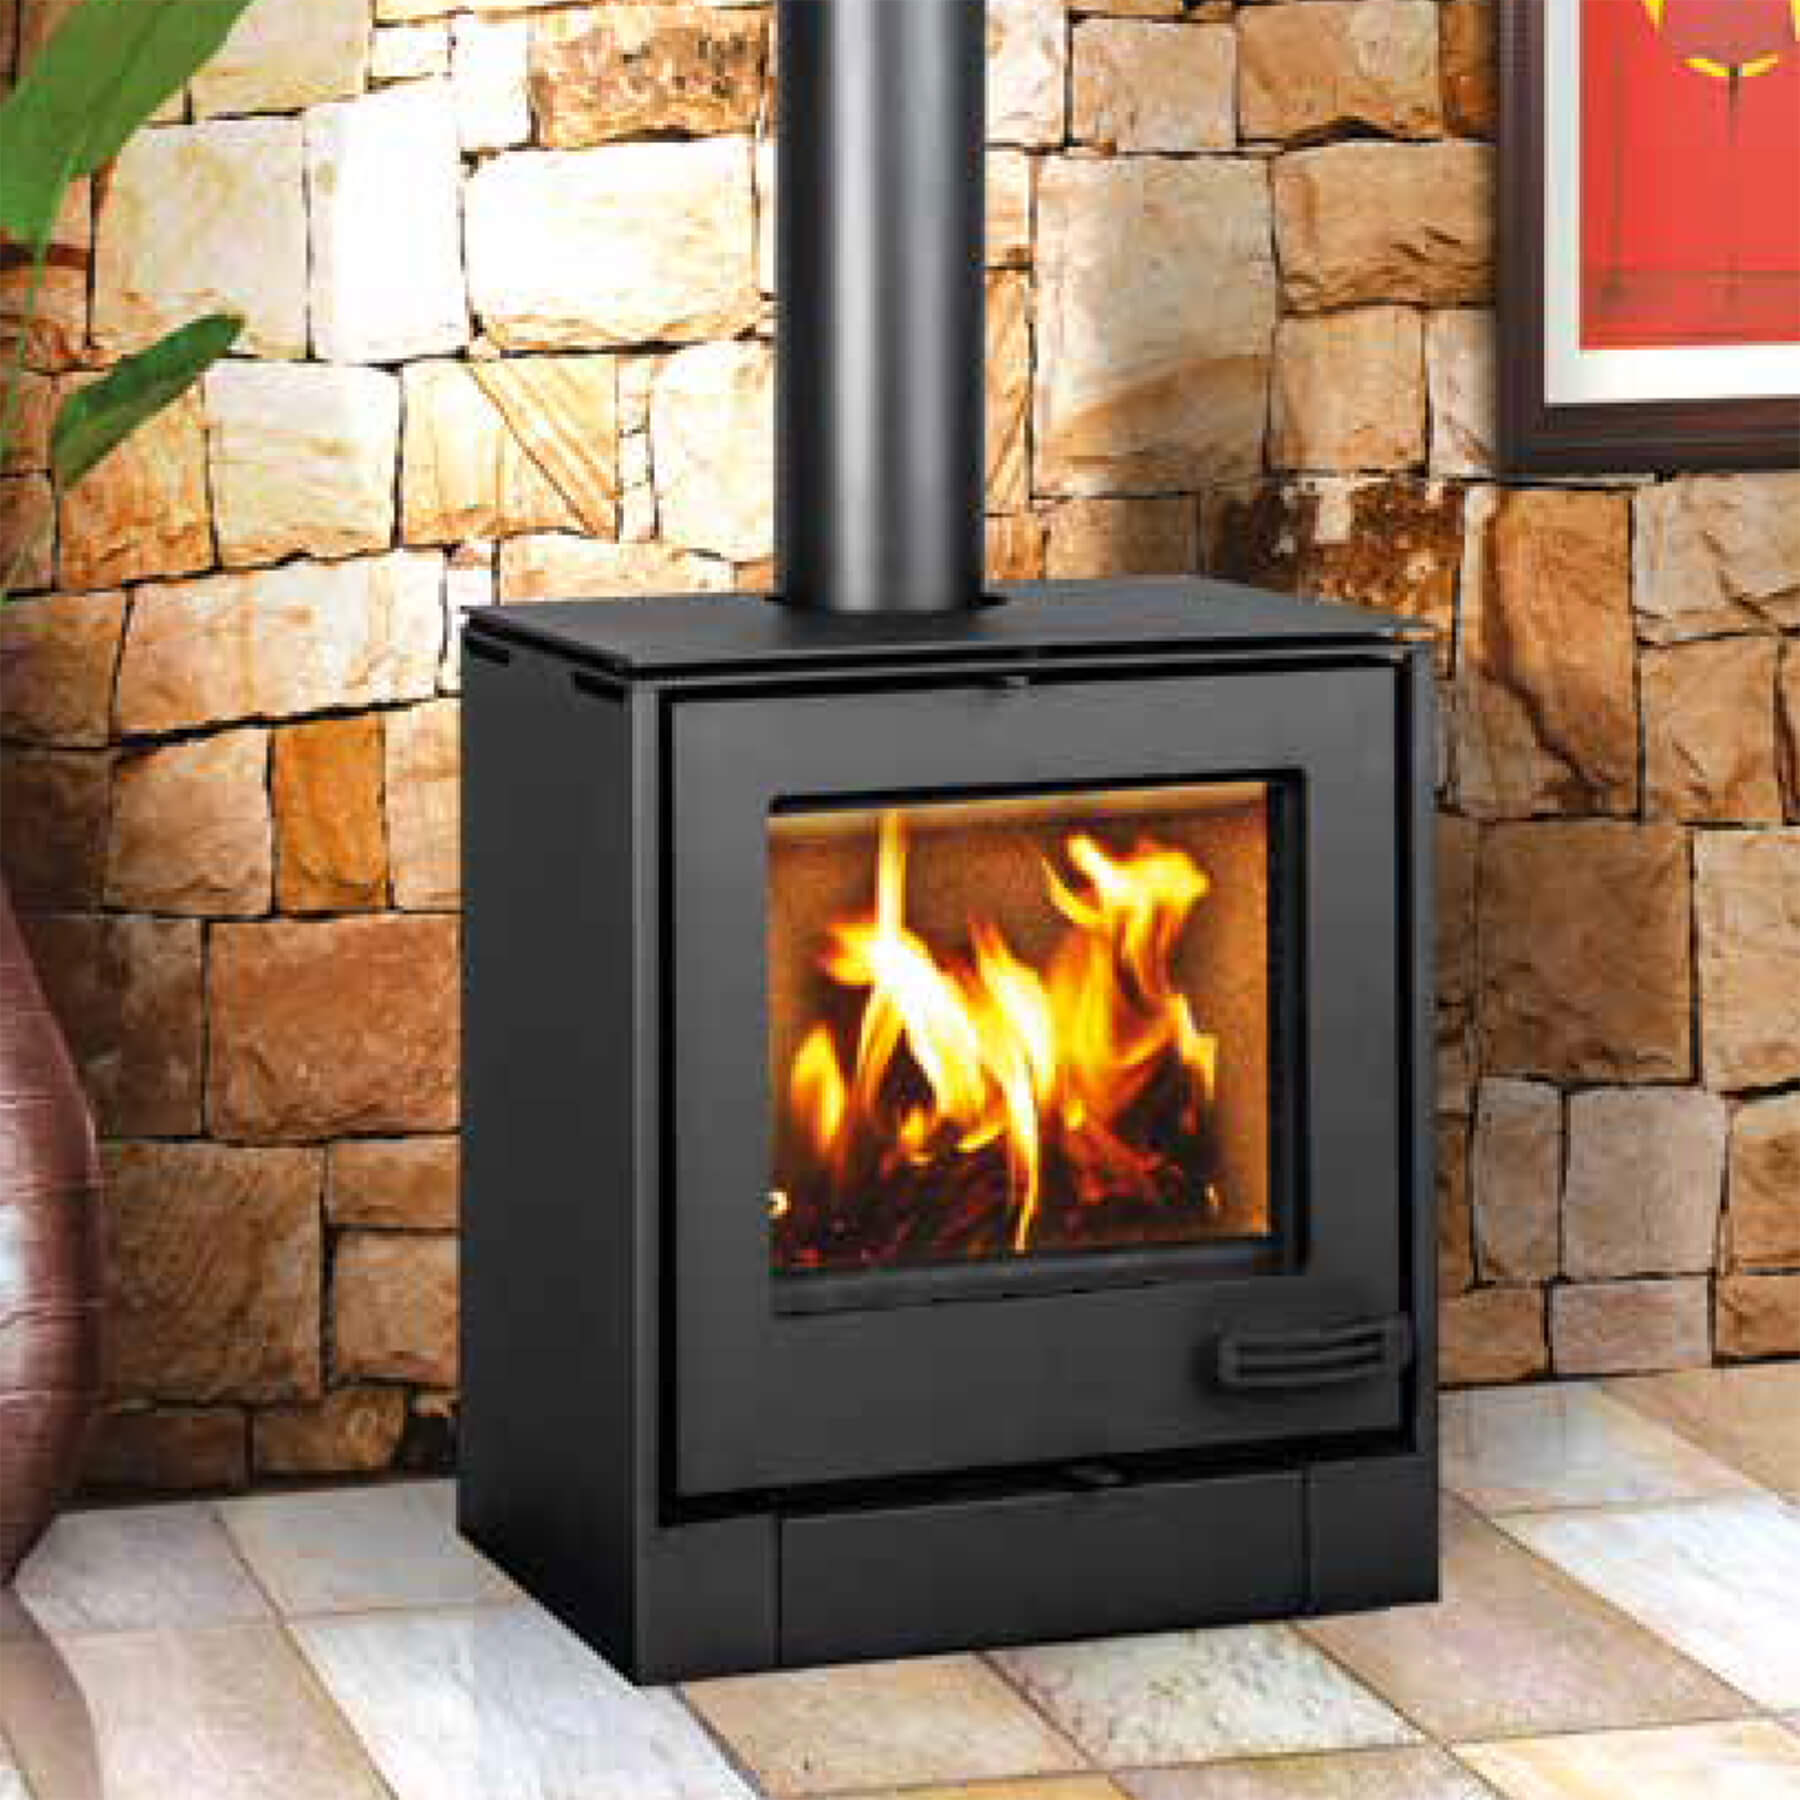 Combustion-Fireplaces-Freetanding-8kw-Convection-Unit-Cube-Look-Environment